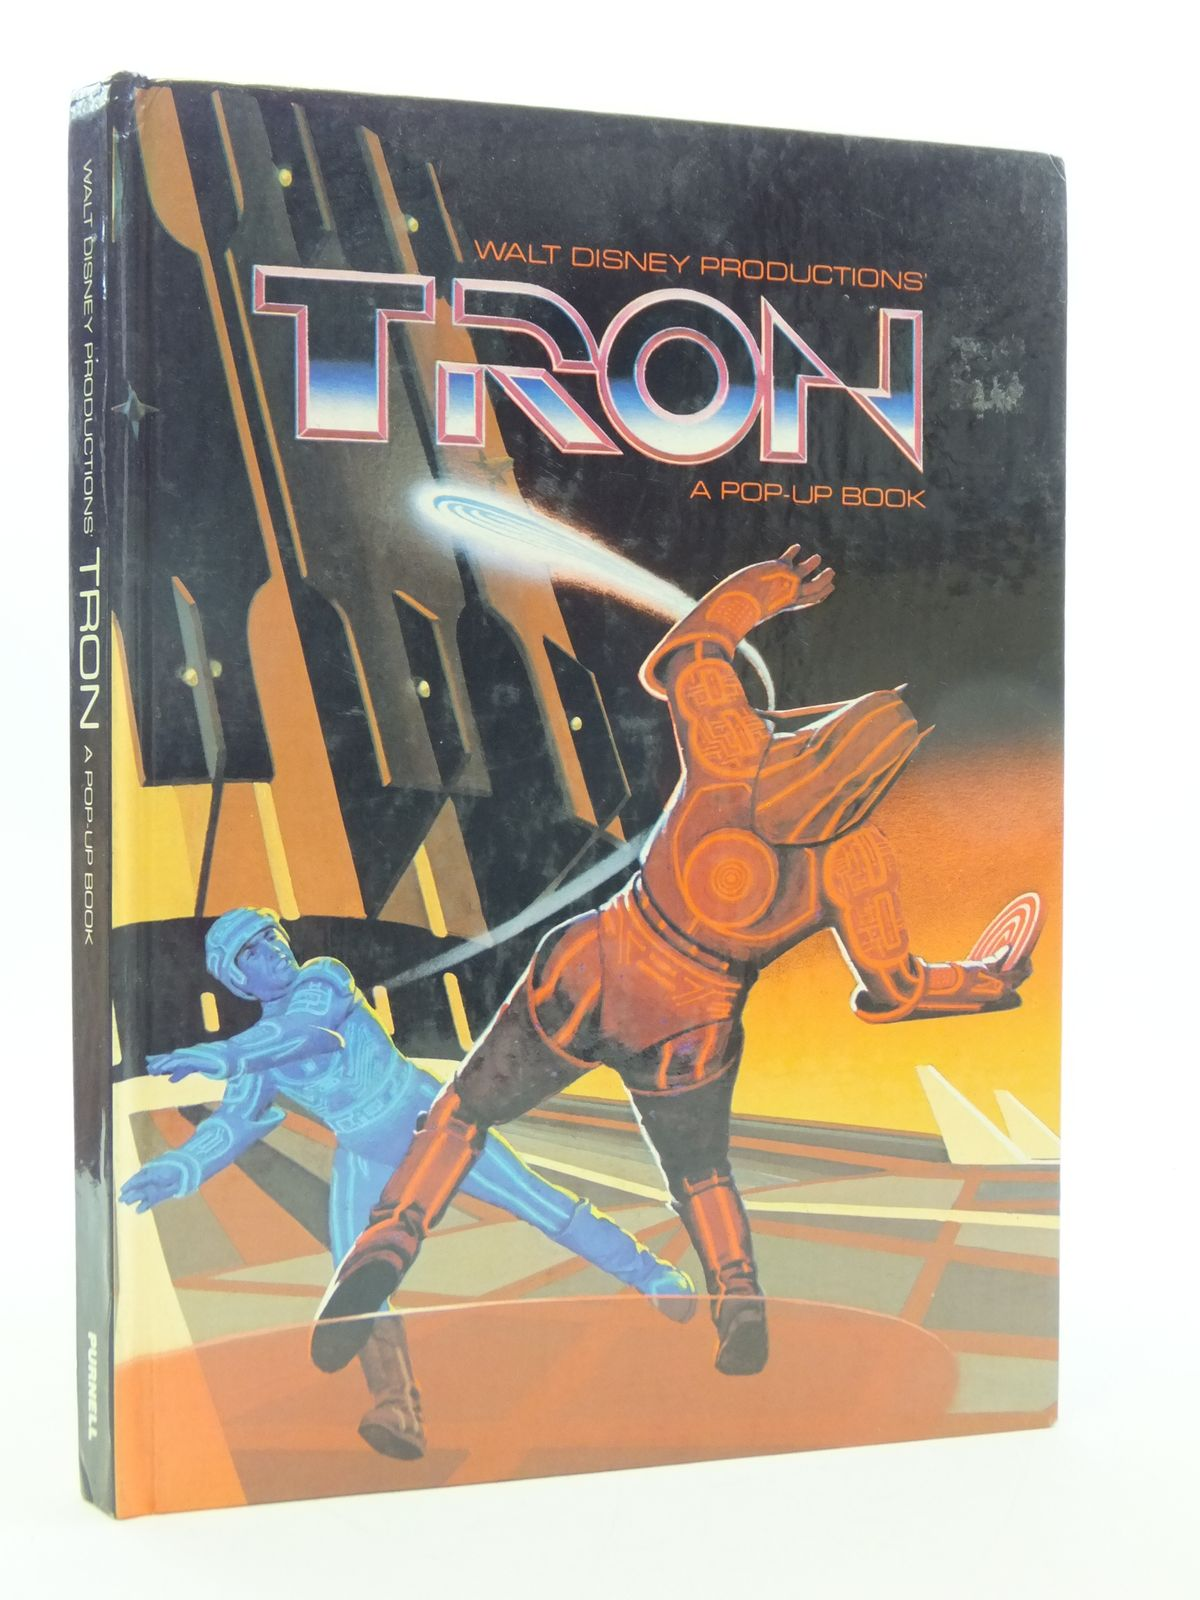 Photo of TRON A POP-UP BOOK